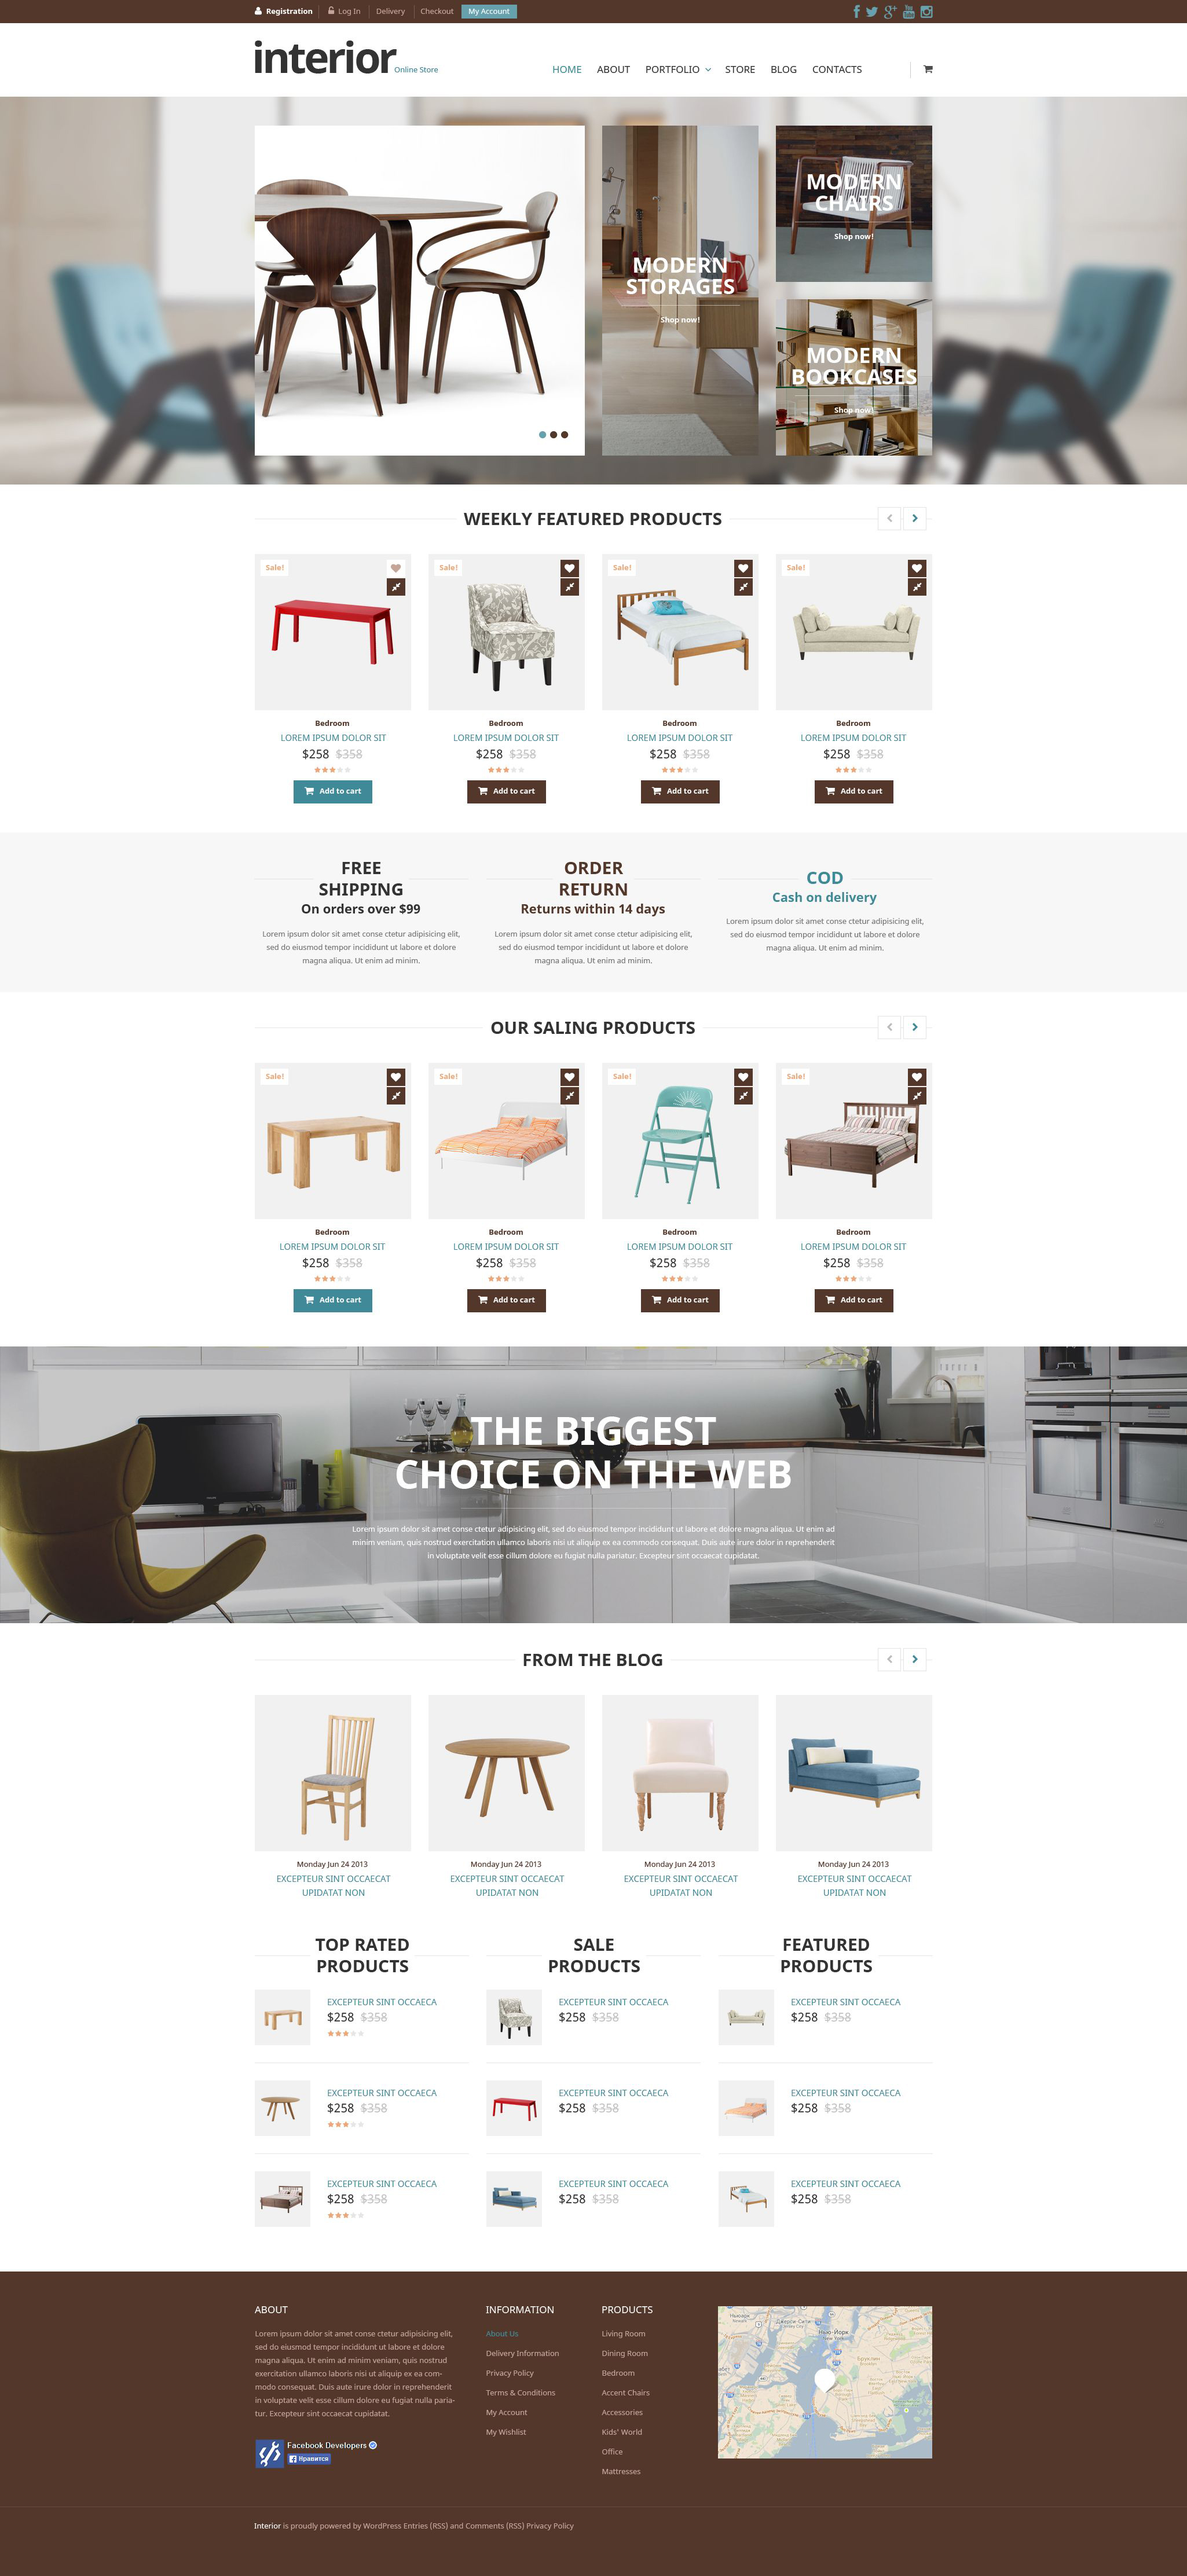 The Interior Furniture Company Design WooCommerce Design 53191, one of the best WooCommerce themes of its kind (art & photography, most popular), also known as interior furniture company design WooCommerce template, home solution WooCommerce template, interior WooCommerce template, profile designer WooCommerce template, portfolio WooCommerce template, non-standard WooCommerce template, creative idea WooCommerce template, mirror WooCommerce template, clock WooCommerce template, cutlery WooCommerce template, lighting WooCommerce template, ceiling WooCommerce template, bathroom WooCommerce template, kitchen WooCommerce template, live WooCommerce template, table WooCommerce template, chair WooCommerce template, armchair WooCommerce template, sofa WooCommerce template, order WooCommerce template, client WooCommerce template, support WooCommerce template, service WooCommerce template, decoration WooCommerce template, style WooCommerce template, collection WooCommerce template, catalogue and related with interior furniture company design, home solution, interior, profile designer, portfolio, non-standard, creative idea, mirror, clock, cutlery, lighting, ceiling, bathroom, kitchen, live, table, chair, armchair, sofa, order, client, support, service, decoration, style, collection, catalogue, etc.